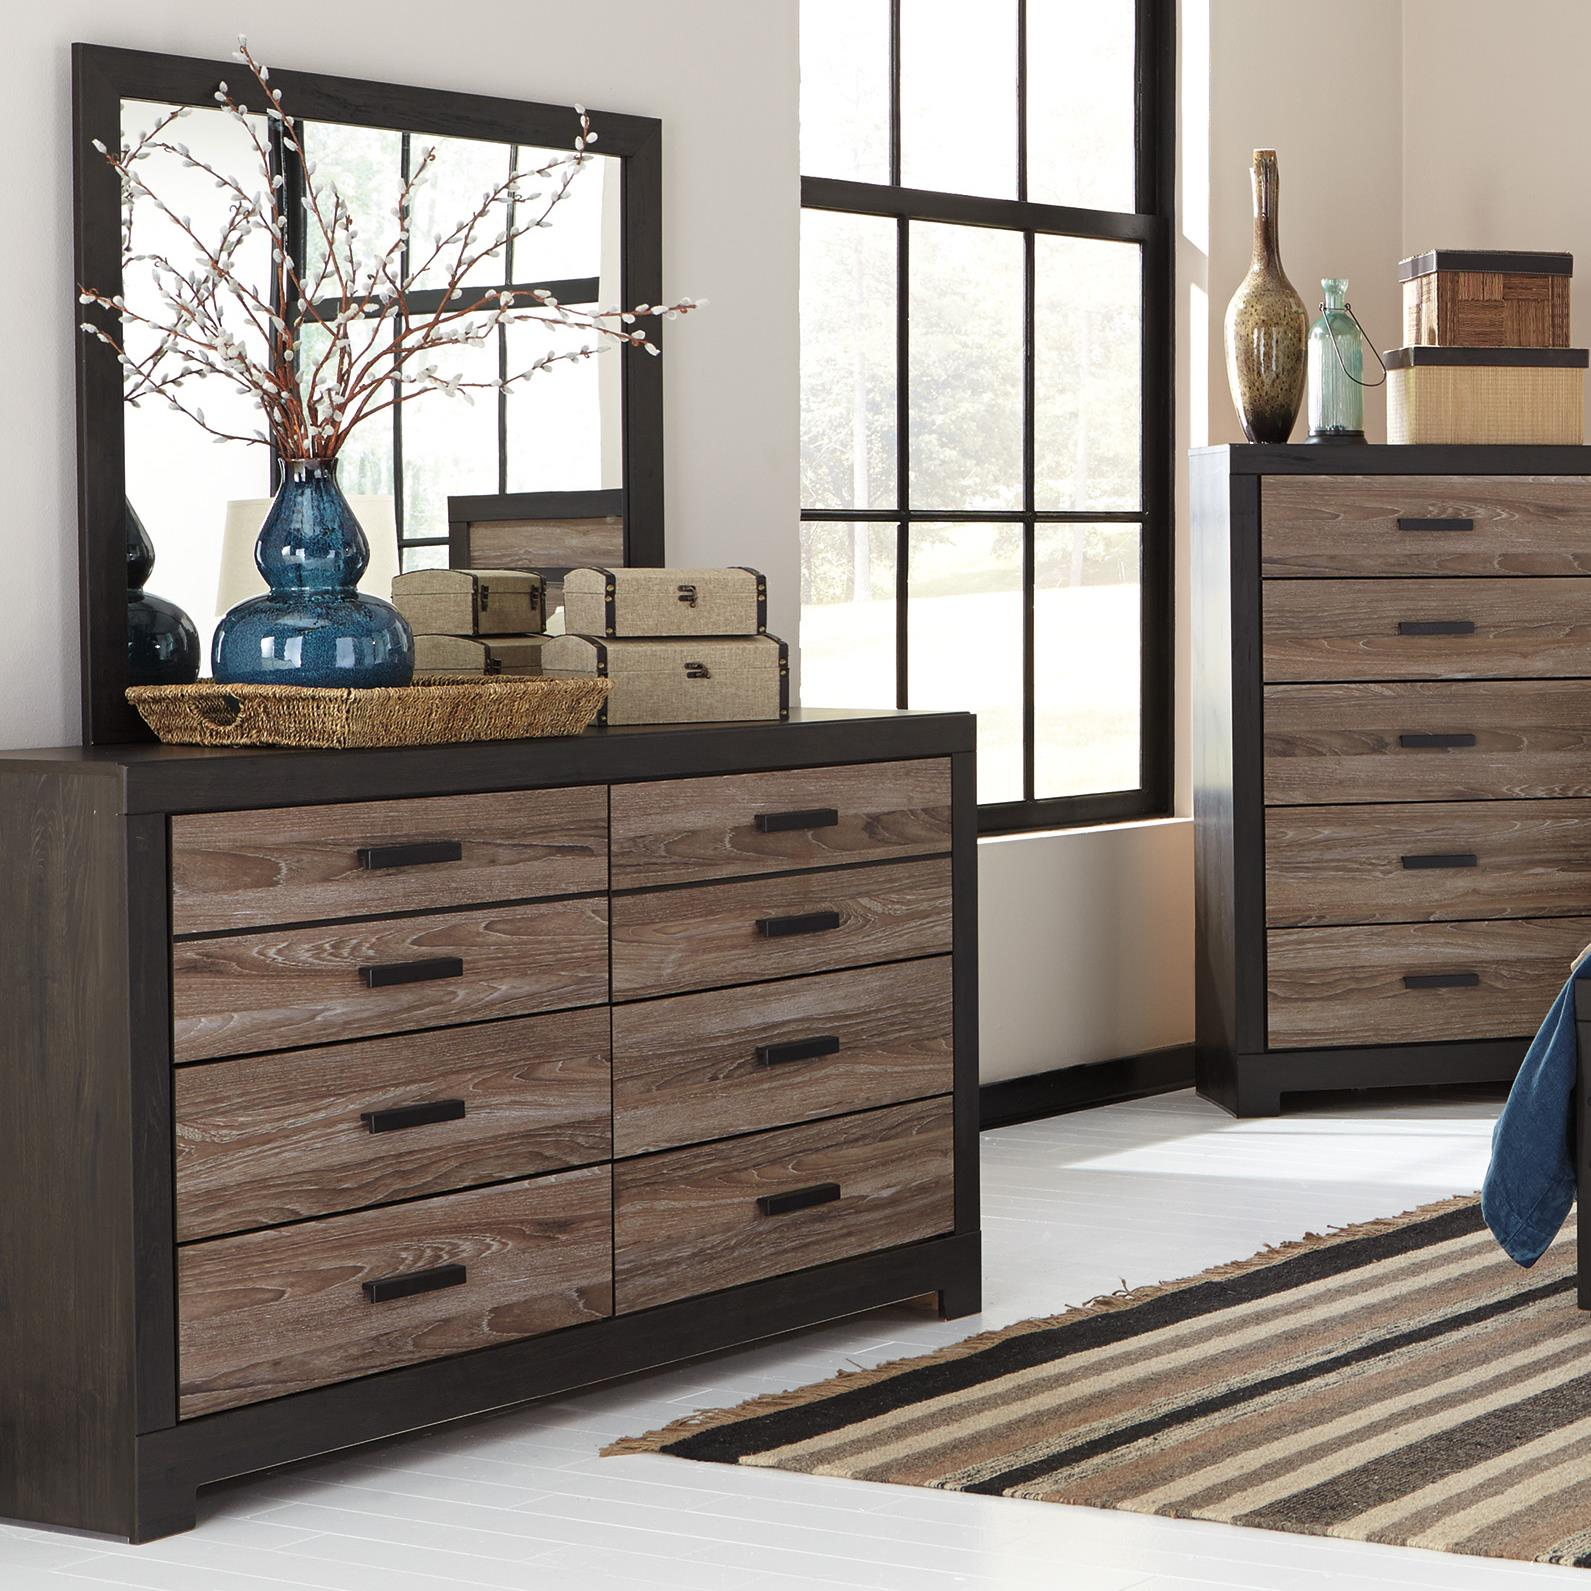 Ashley Signature Design Harlinton Rustic Two Tone Dresser